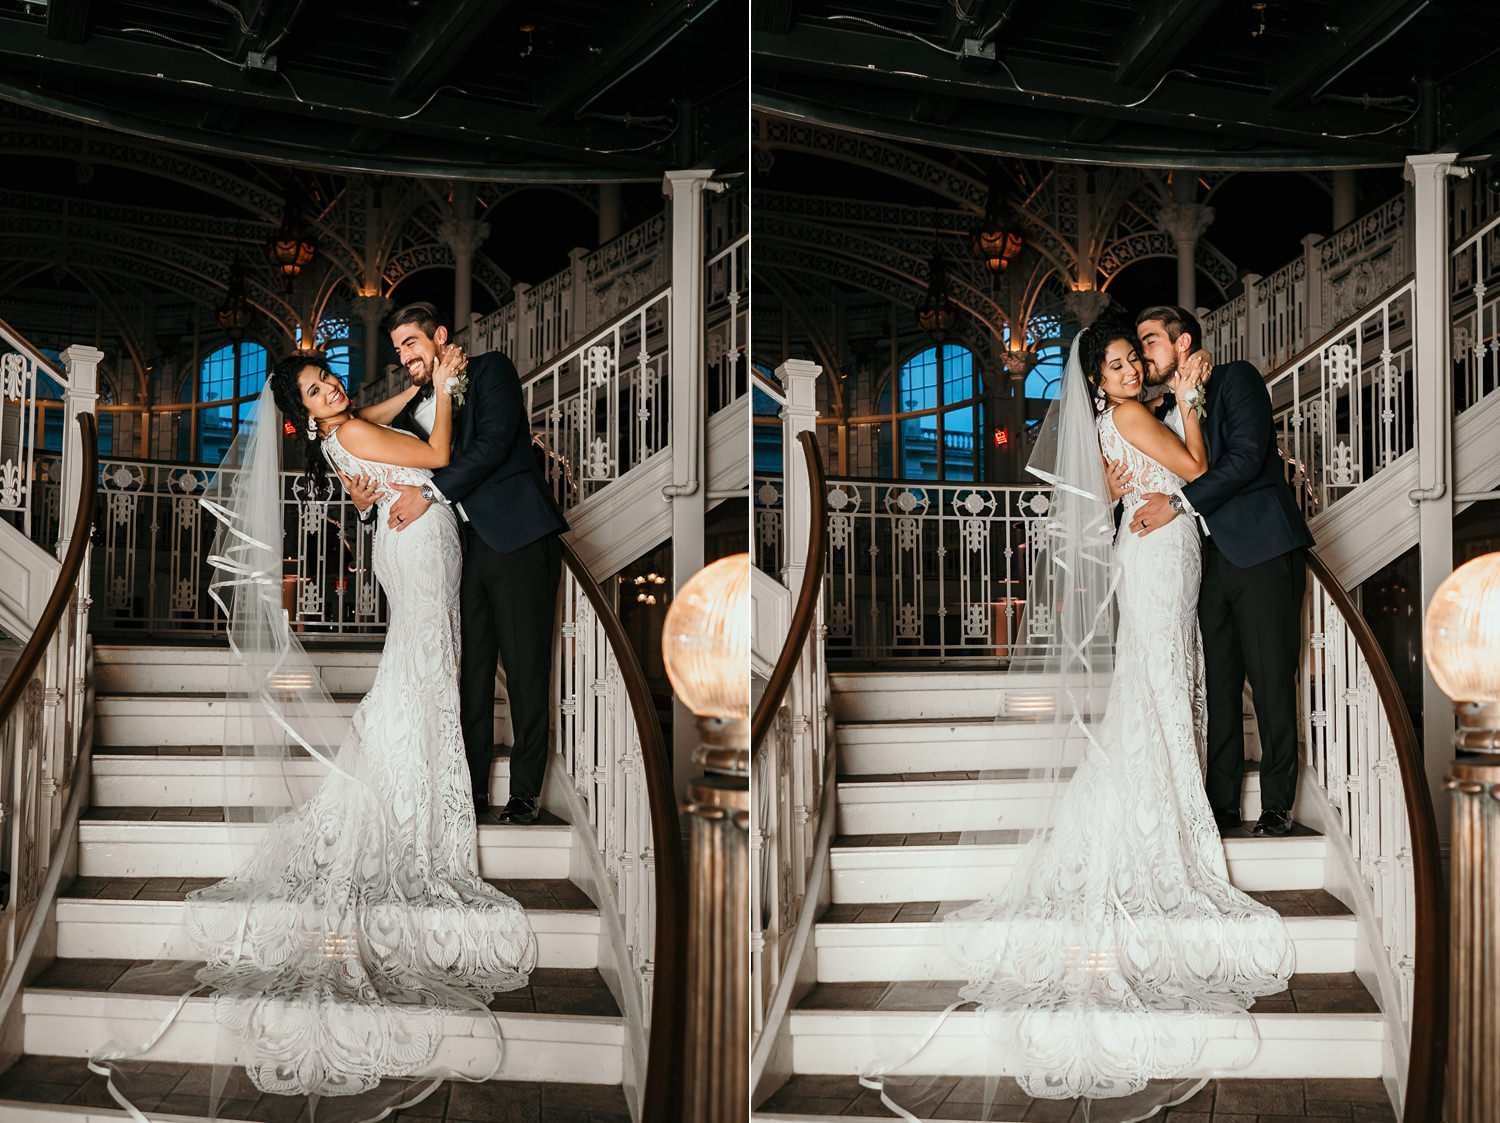 long picture of newlyweds on stairs dress draped on steps